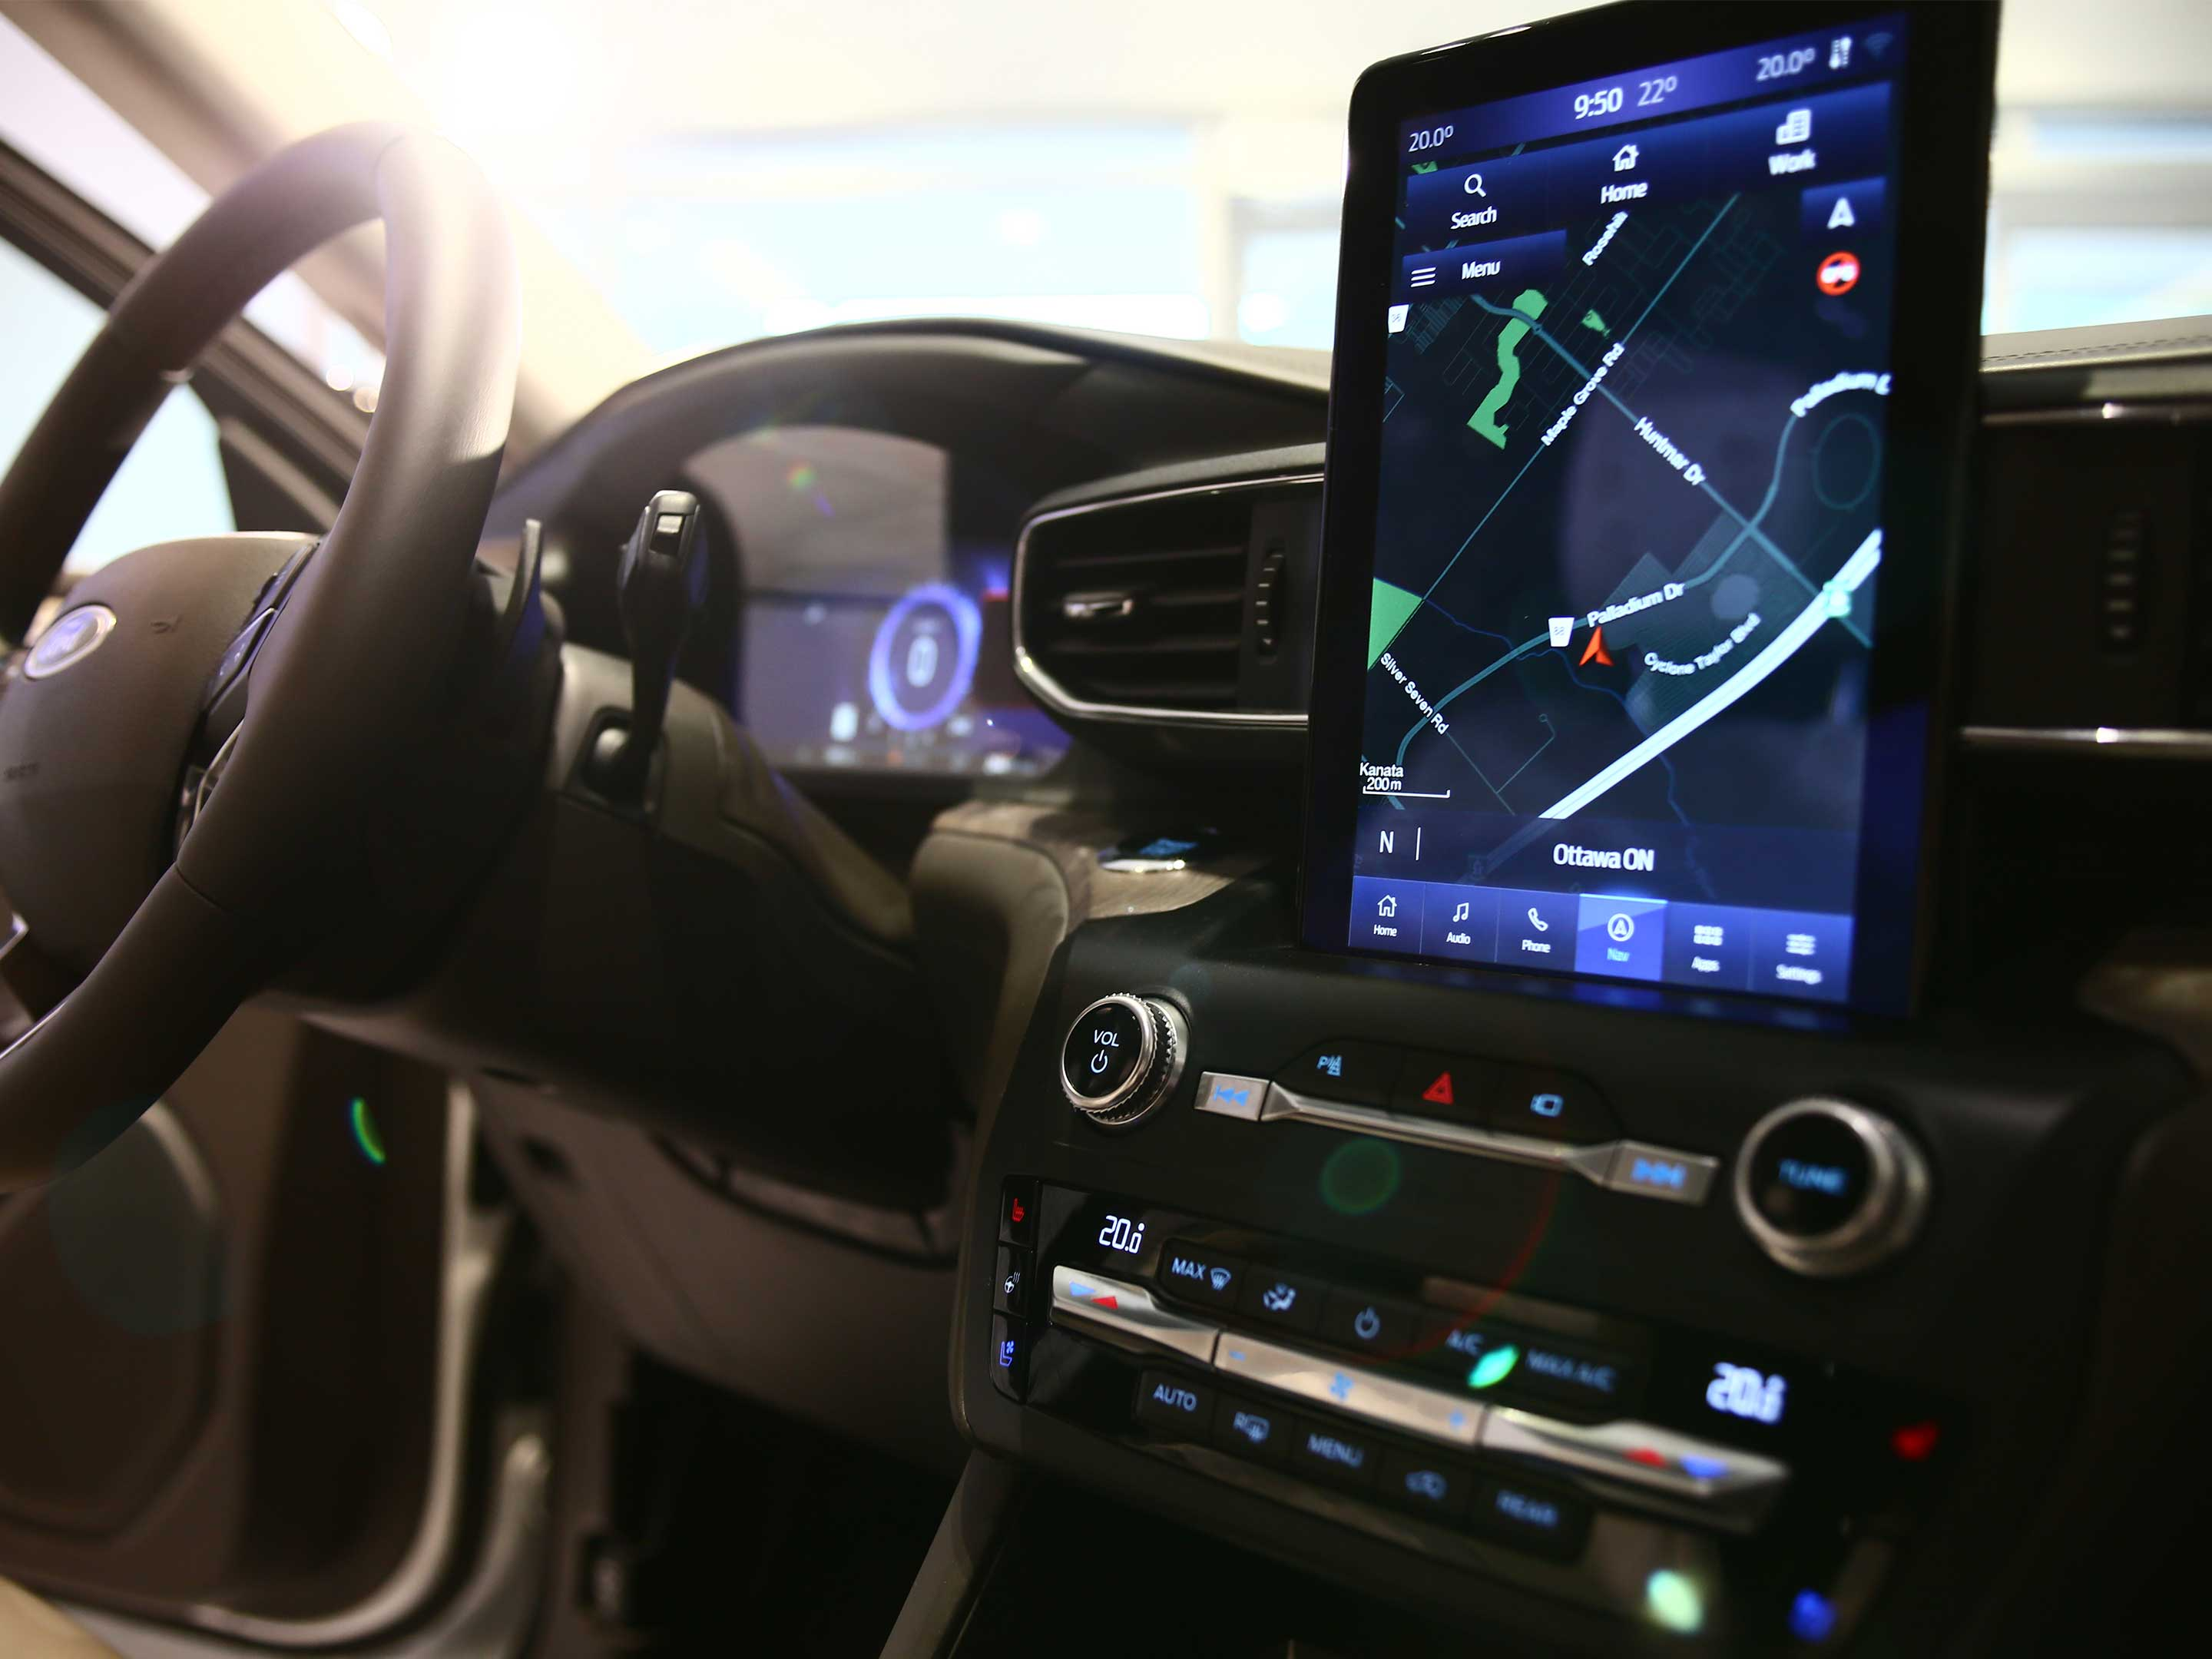 Ford's Canadian software teams helped develop SYNC 3 update